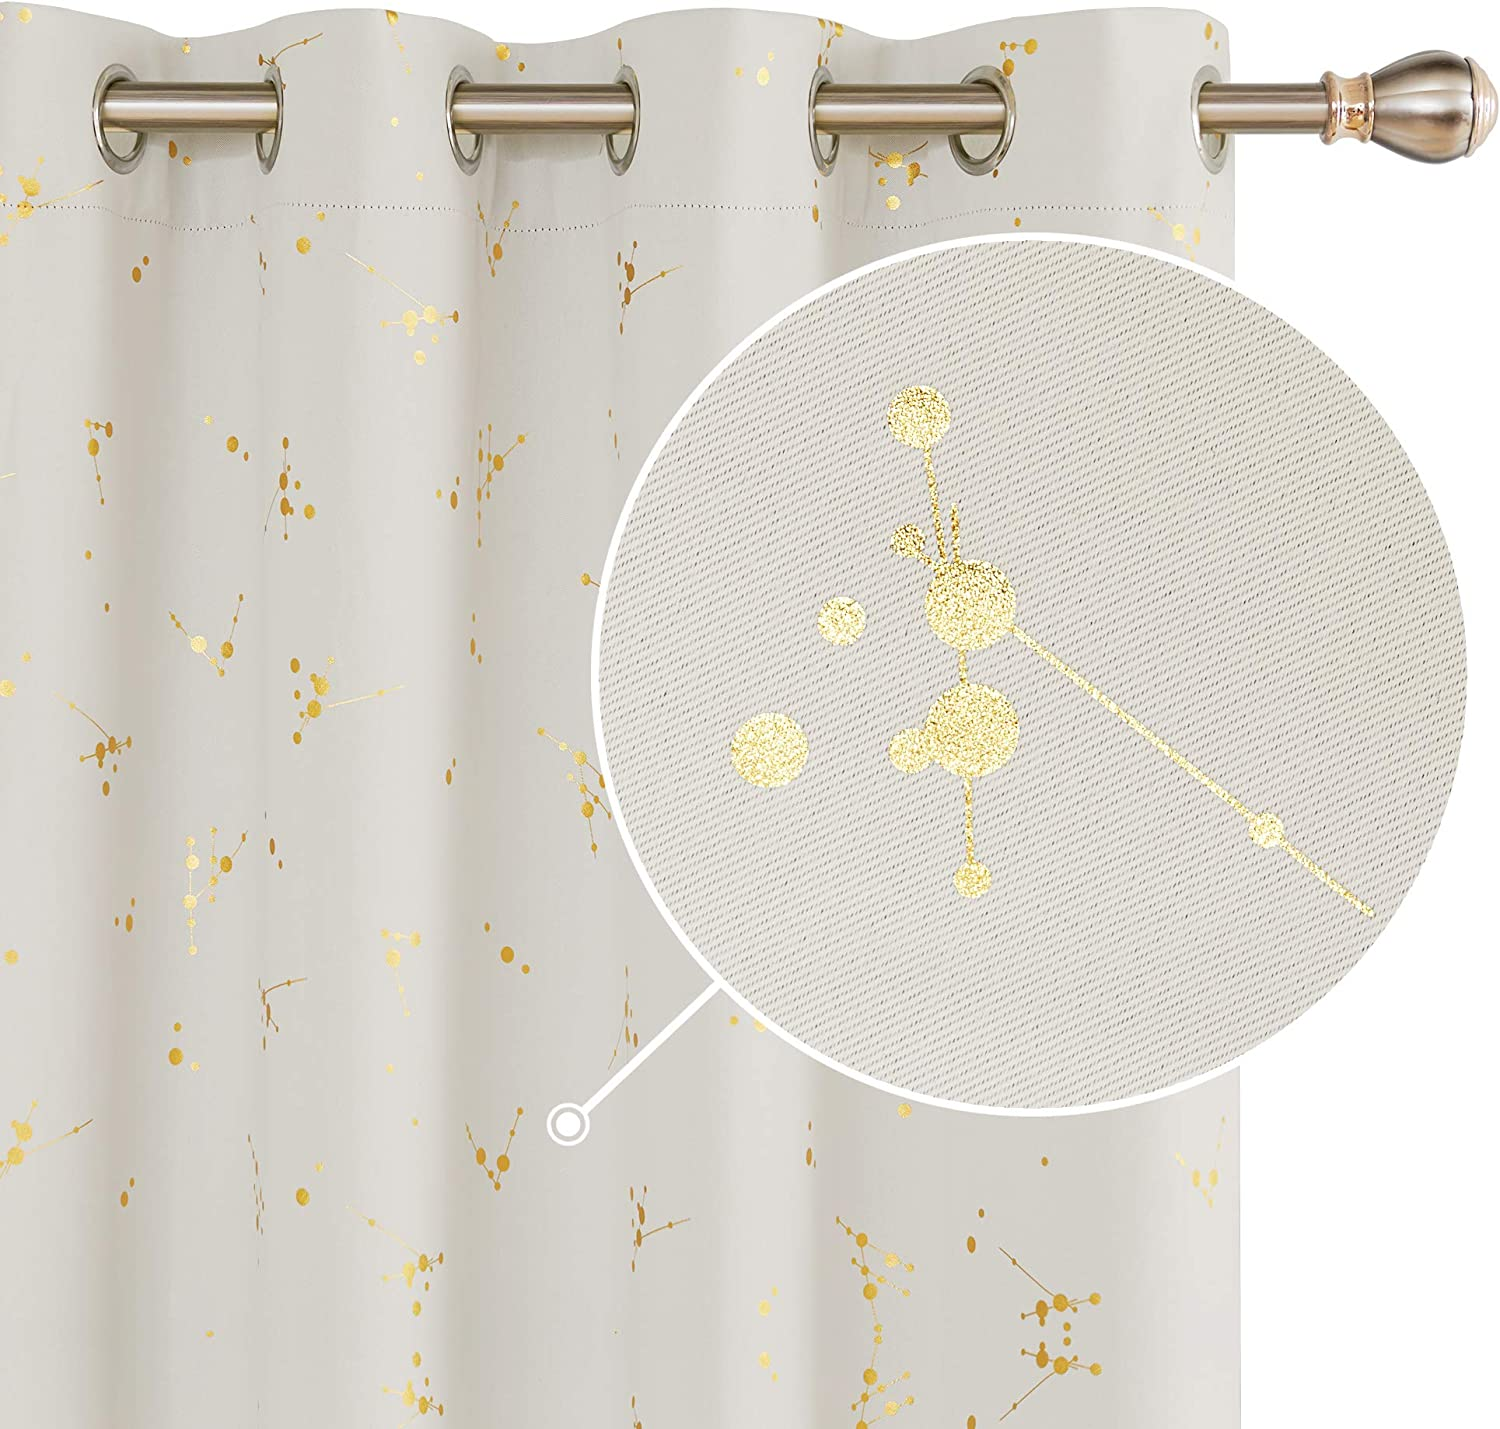 Deconovo Gold Constellation Printed Curtains Thermal Insulated Curtains Eyelet Blackout Curtains for Kids Bedroom with Two Matching Tie Backs Light Grey W66 x L54 One Pair